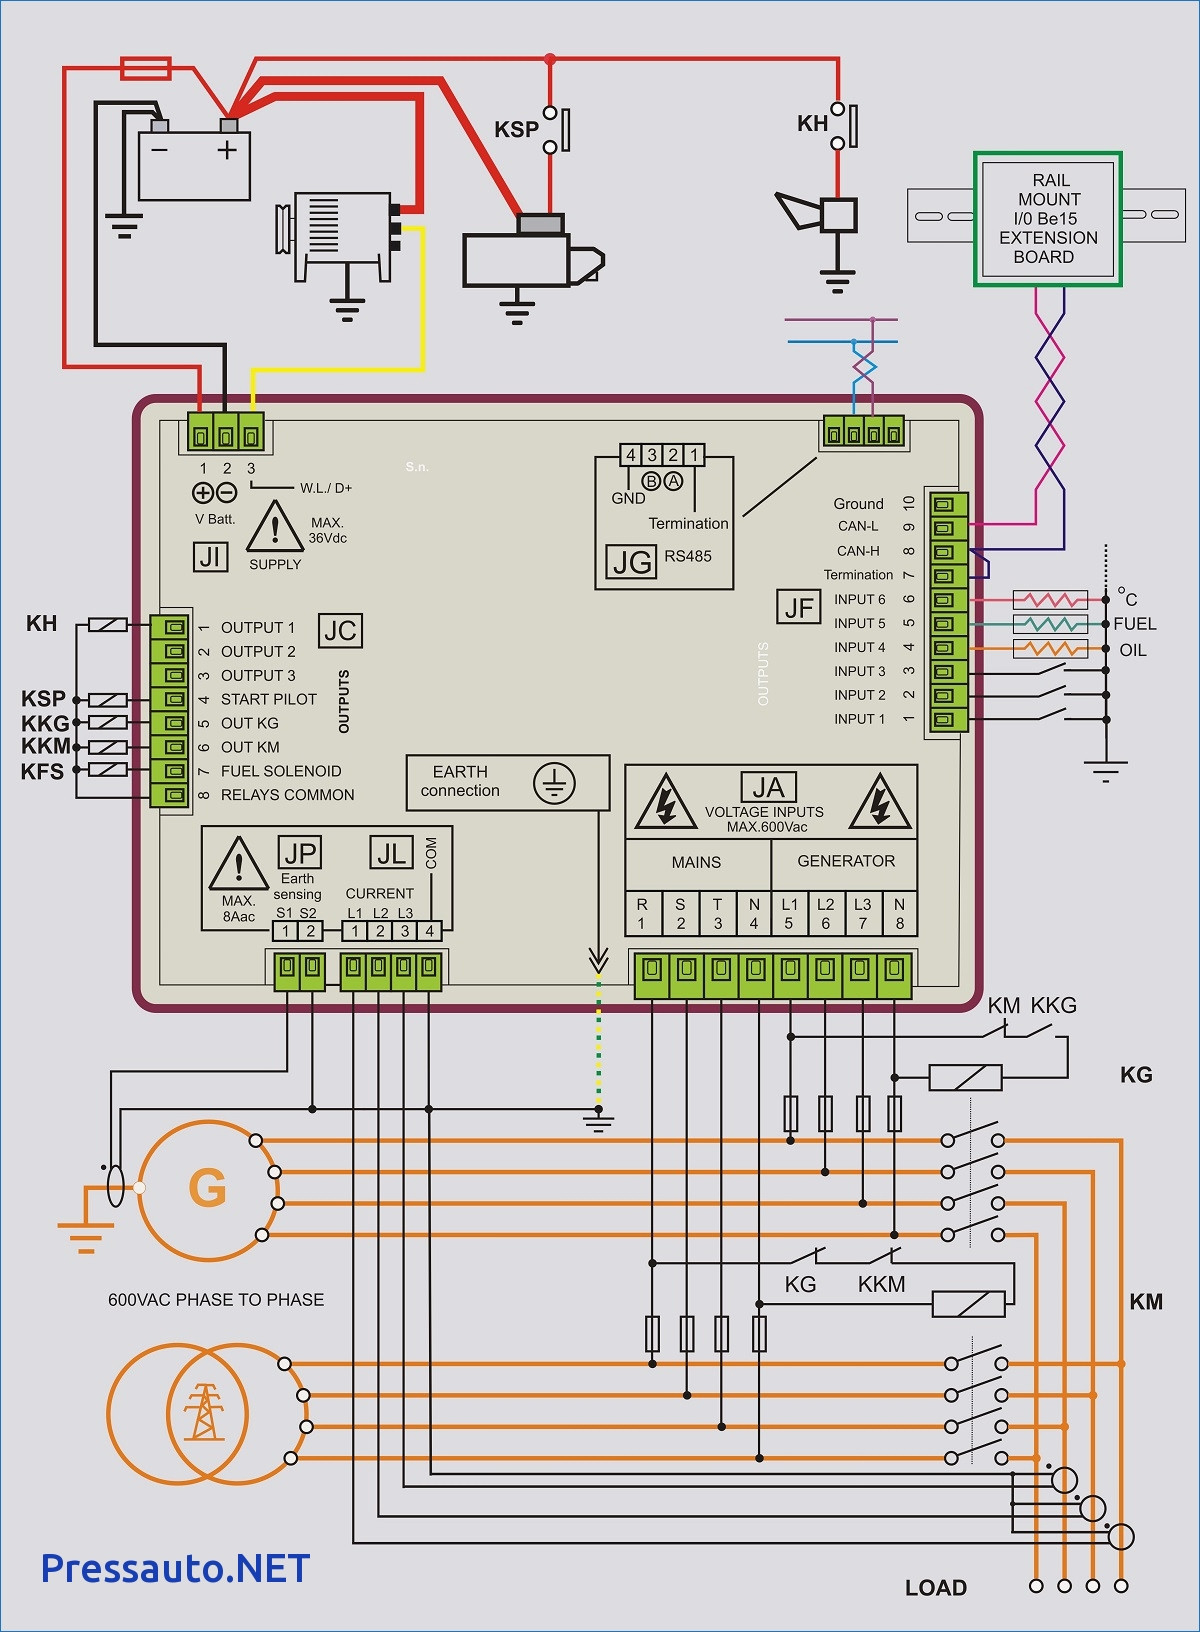 Manual Transfer Switch Wiring Diagram Gallery